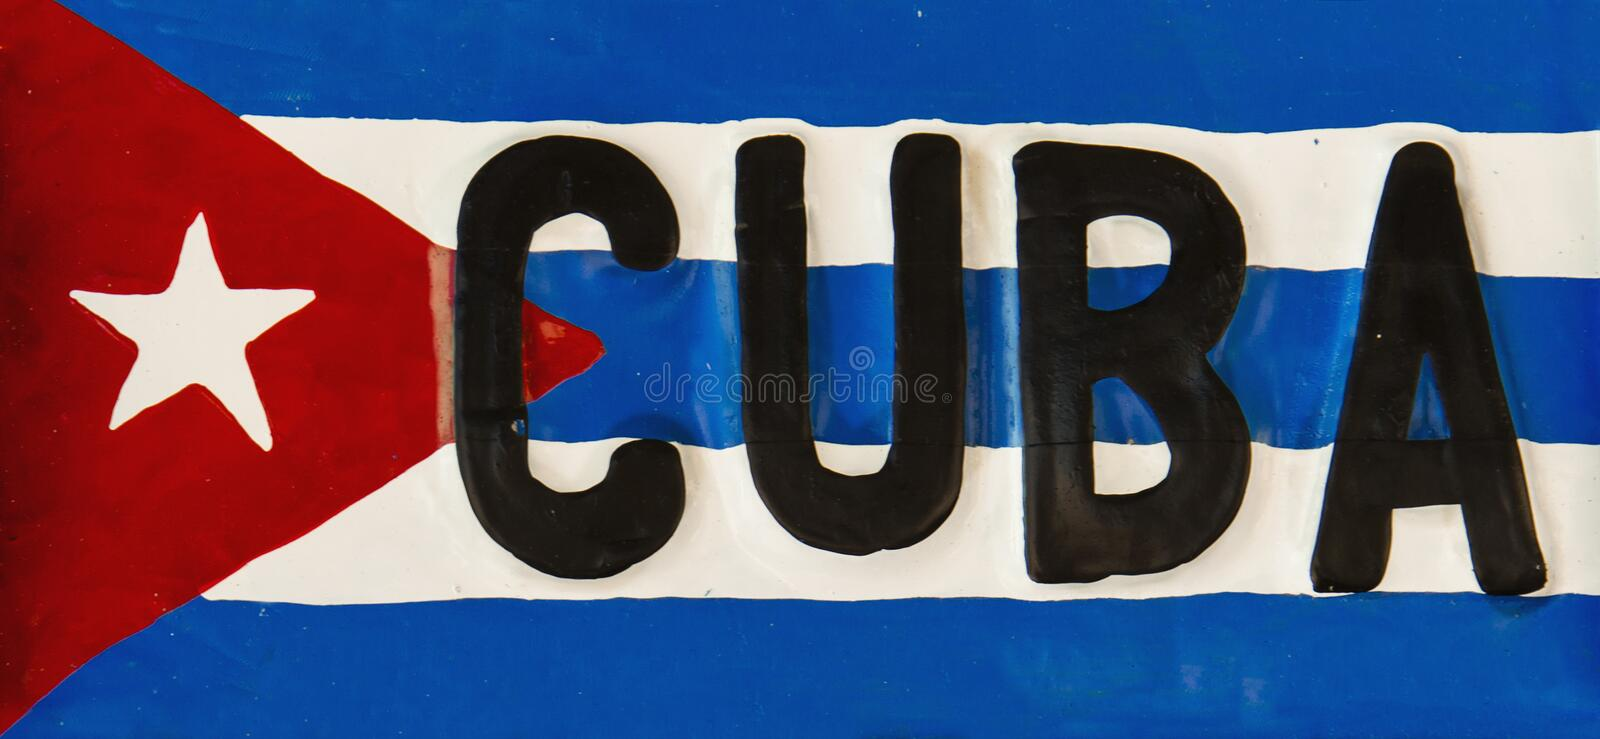 Red-blue-white Cuban flag on metal plate, Cuba stock photos